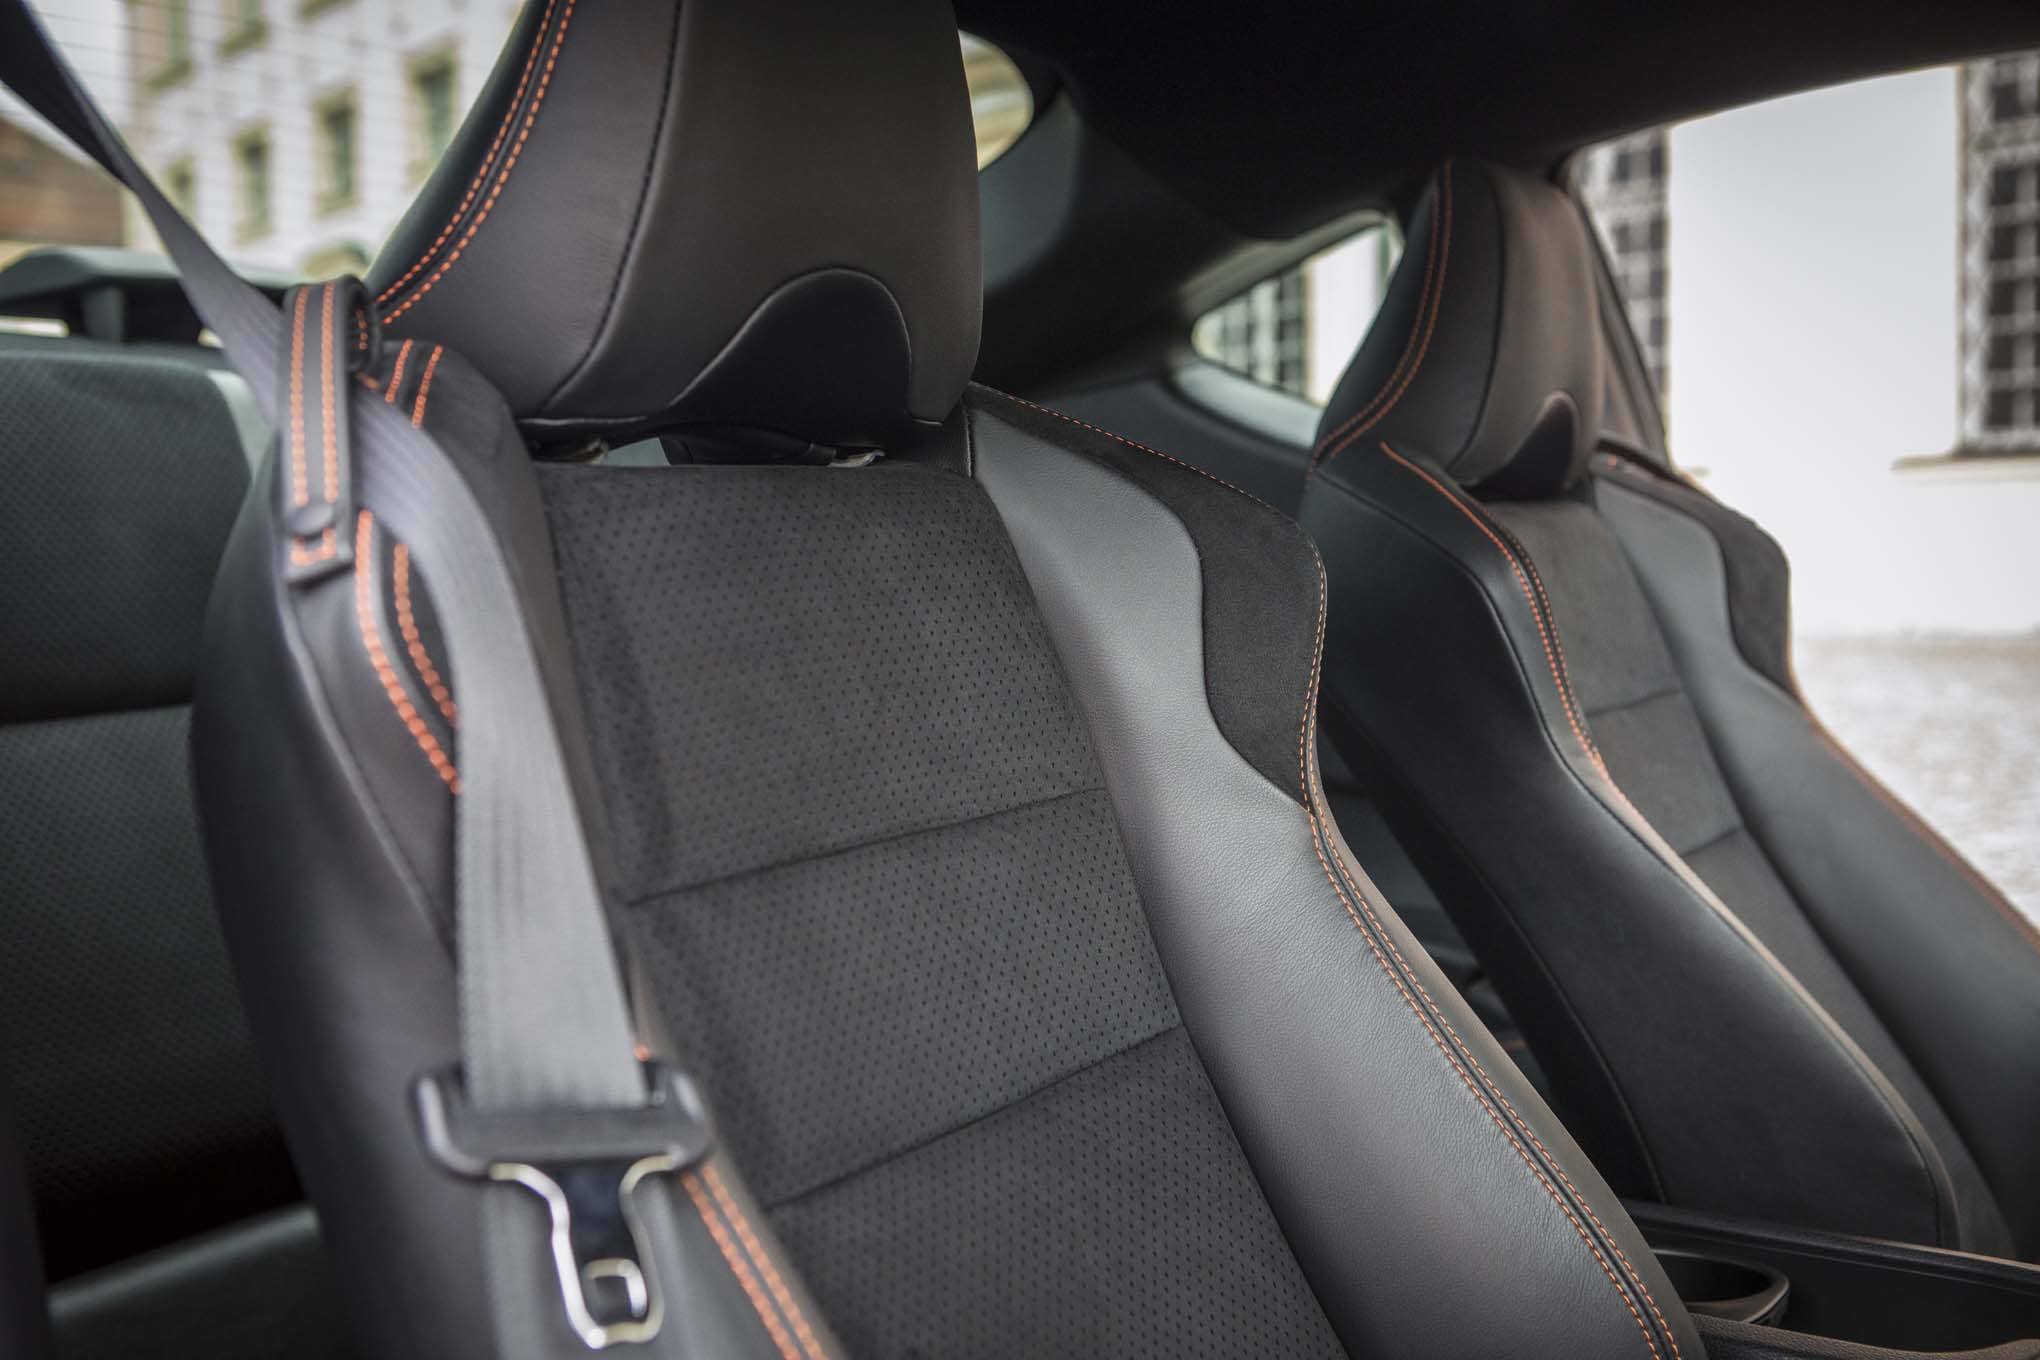 2017 Toyota 86 860 Special Edition interior seats